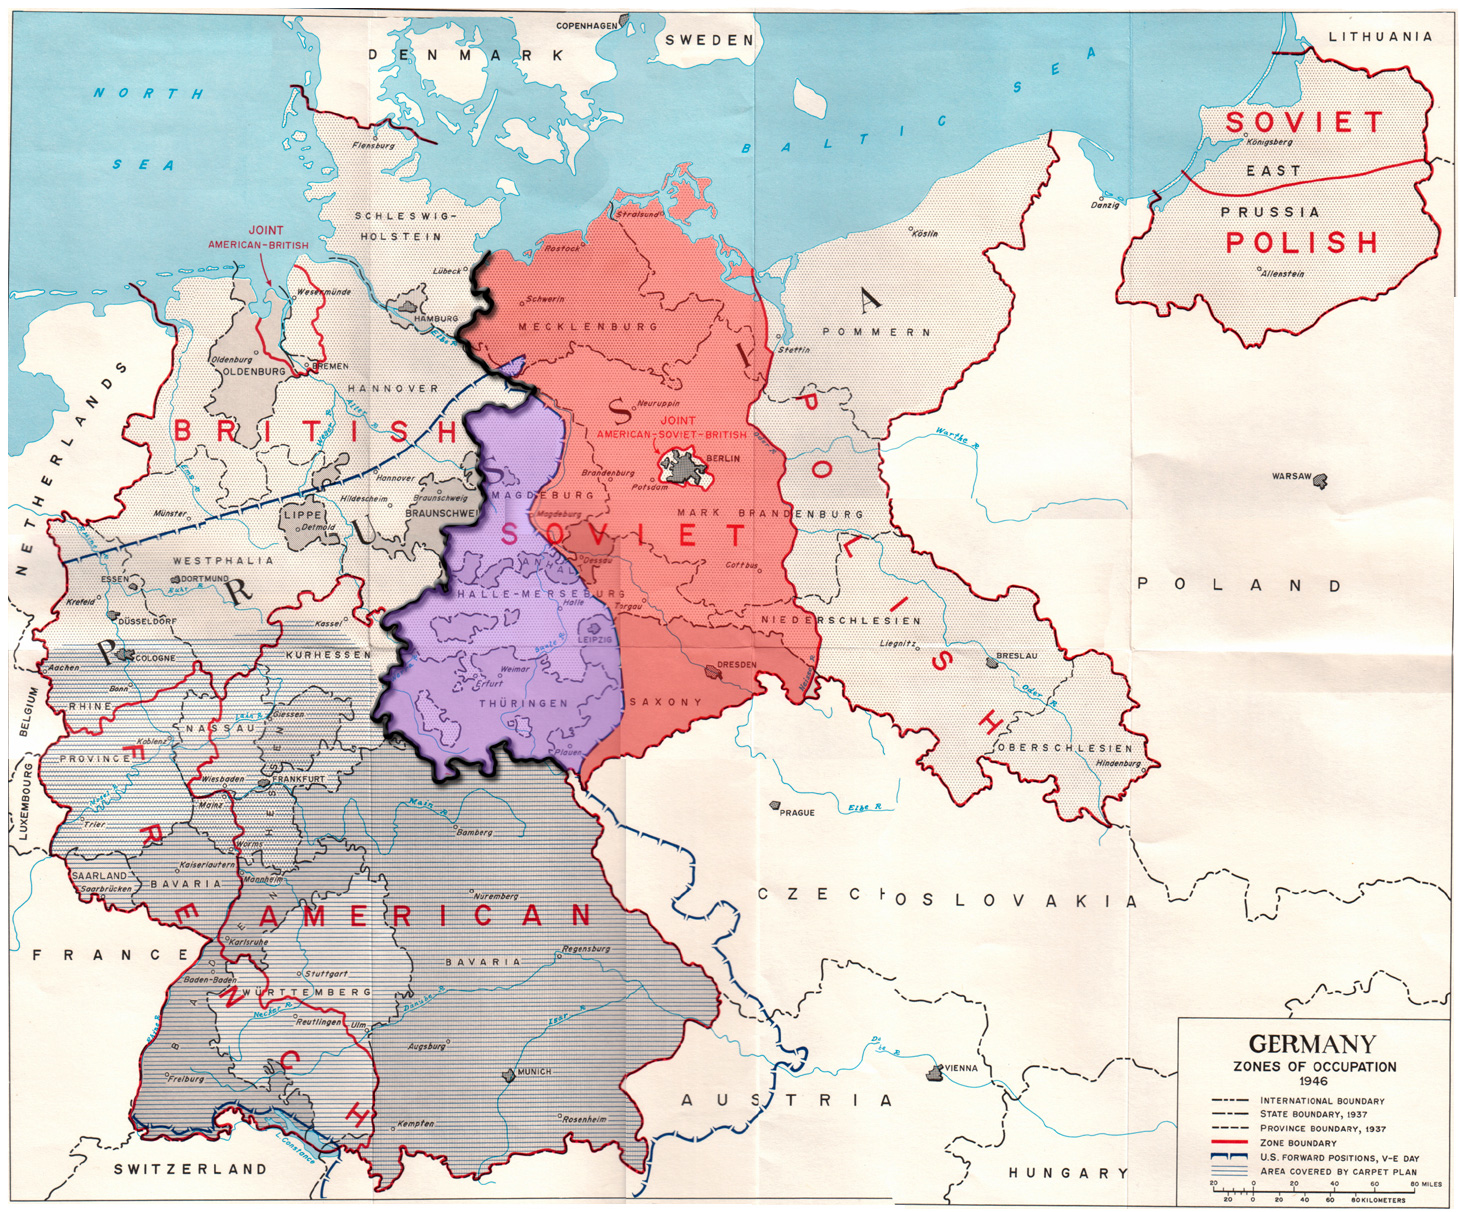 FileGermany Occupation Zones With Borderjpg Wikimedia Commons - Germany map zones